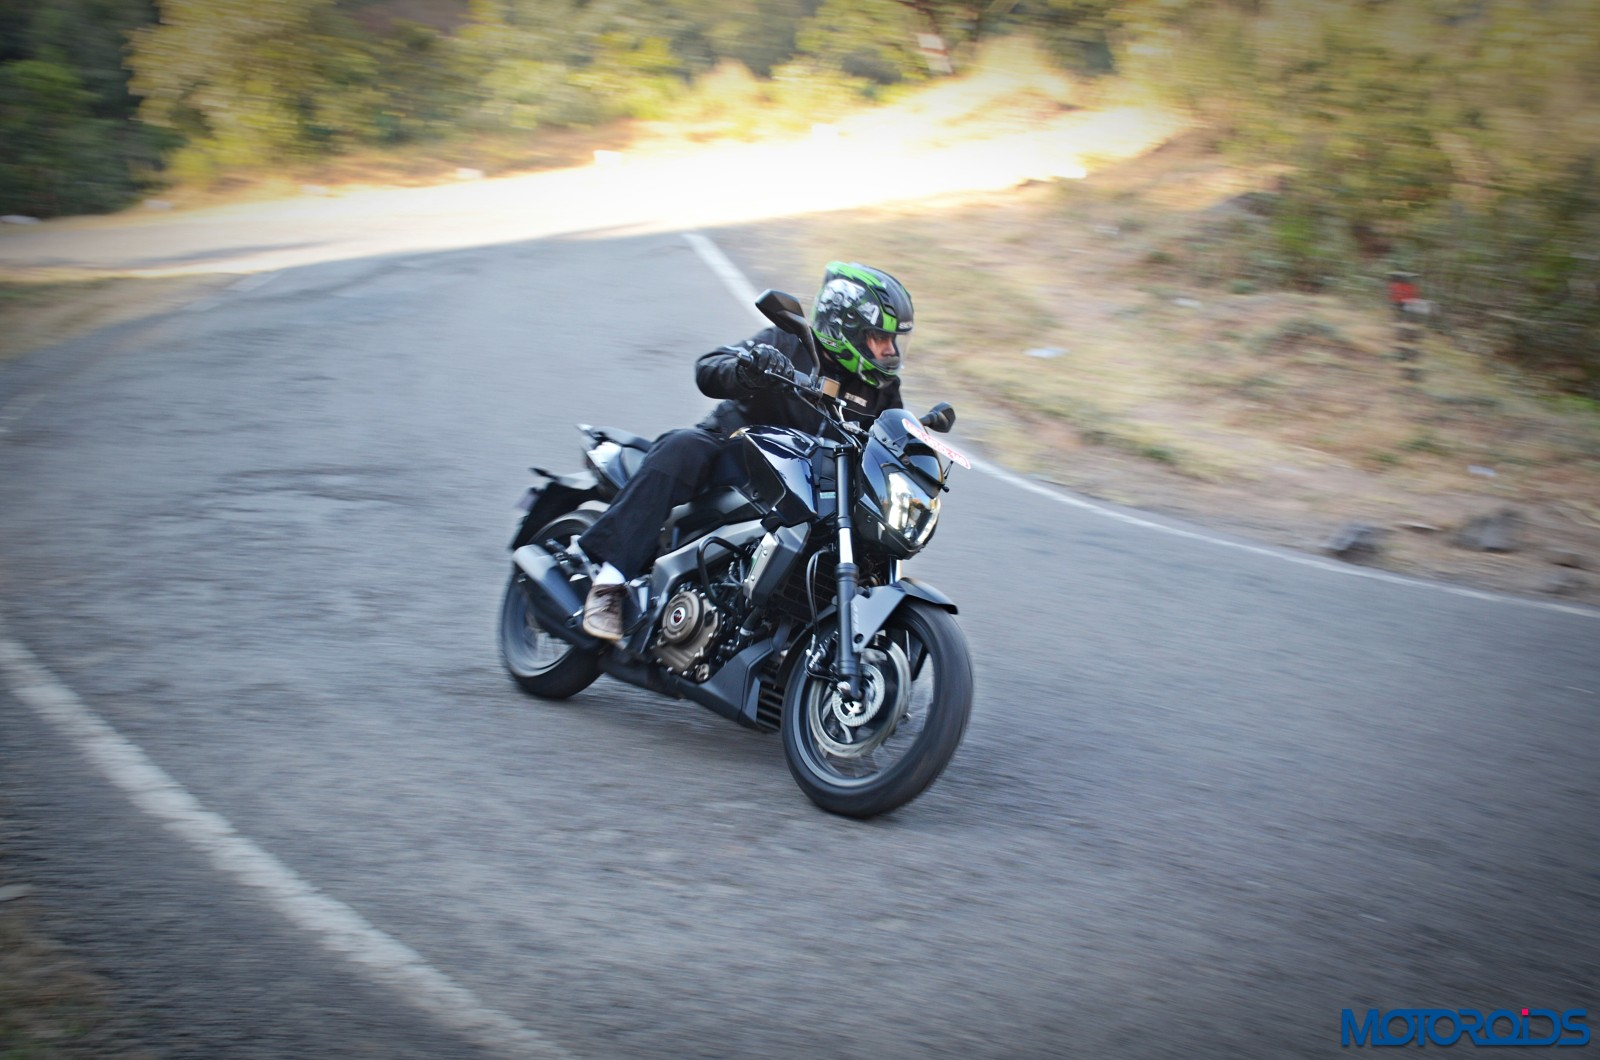 Bajaj-Dominar-400-Action-shots-10